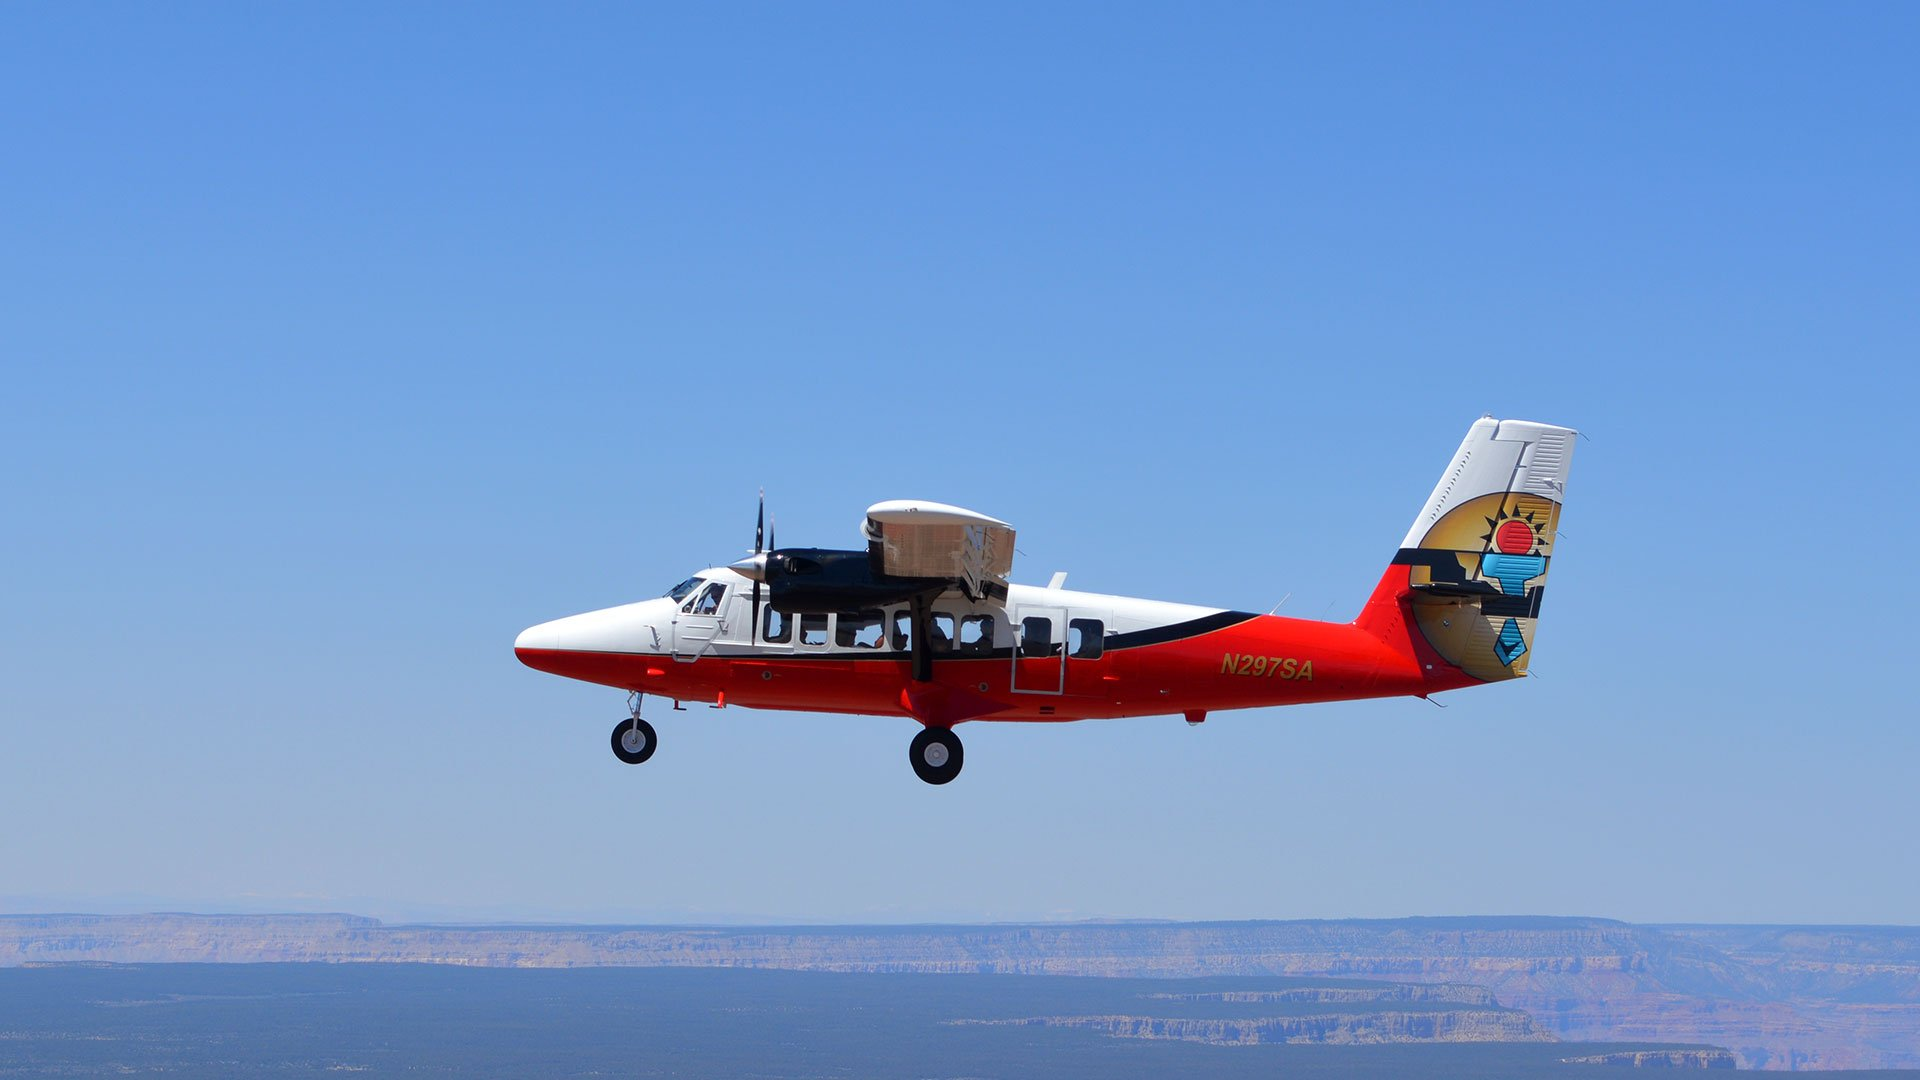 A Twin Otter plane in flight